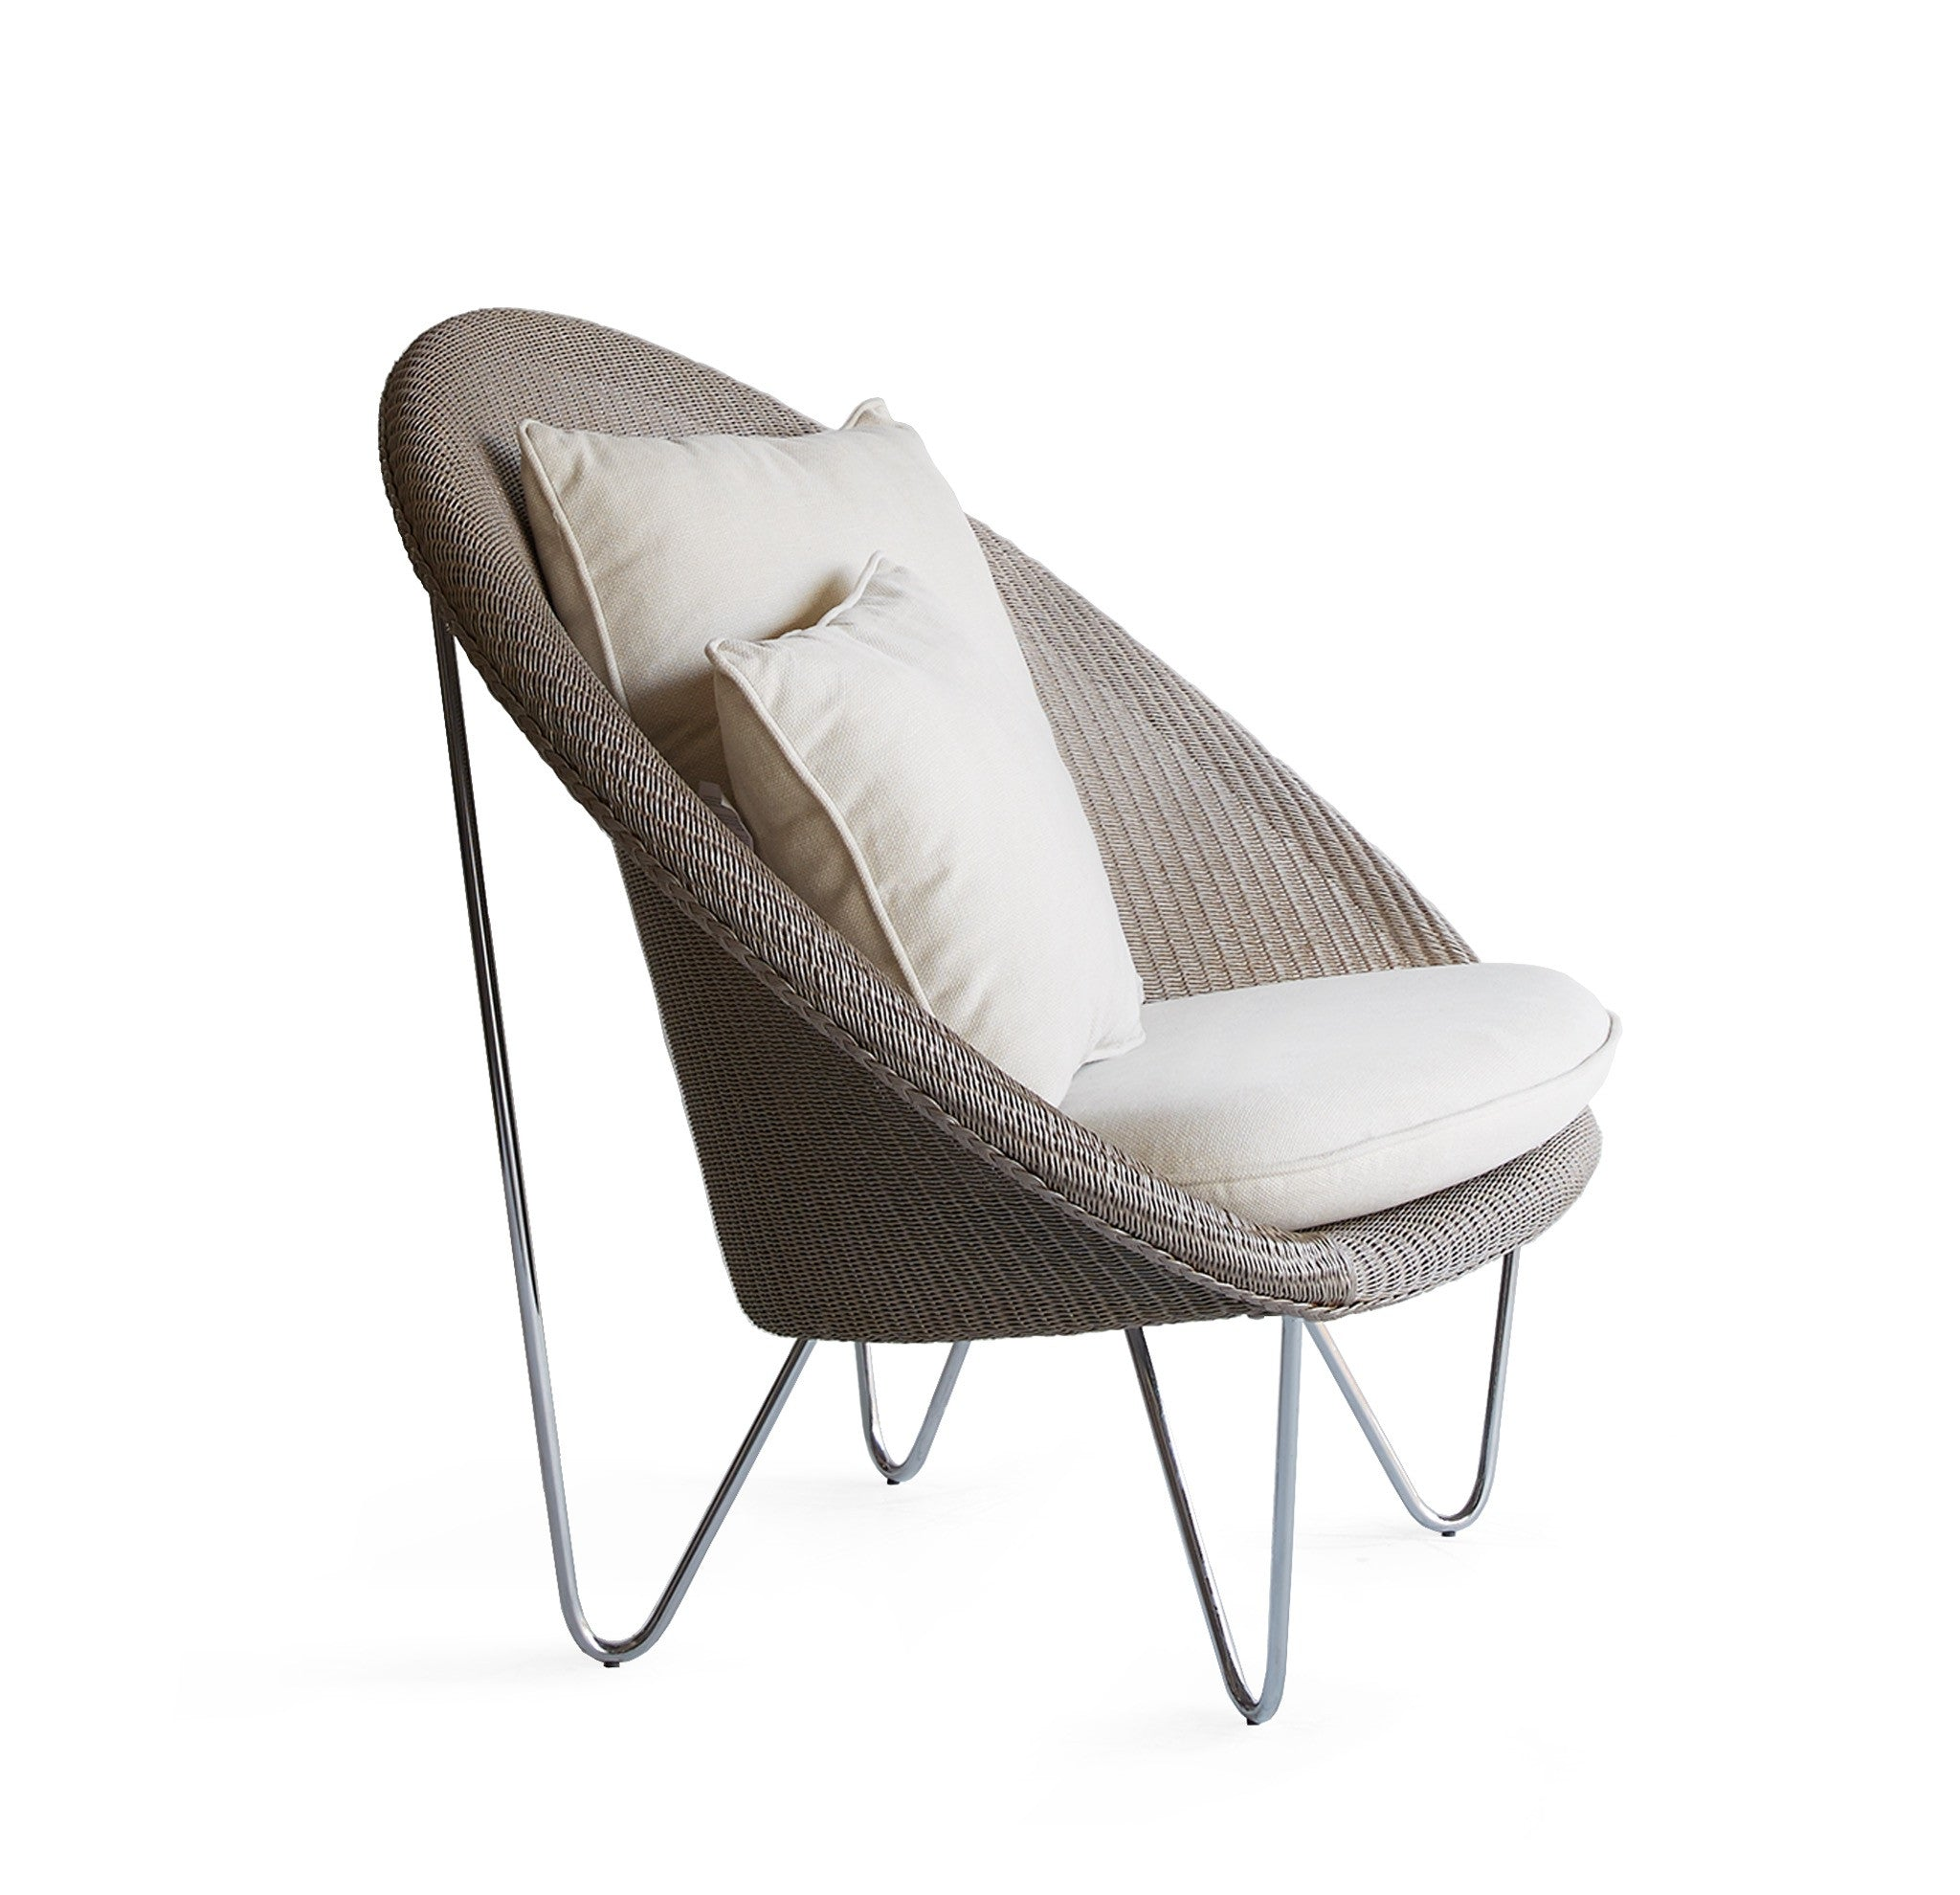 Joe Cocoon Chair | Nacre MW-Vincent Sheppard-Originals Furniture - 2